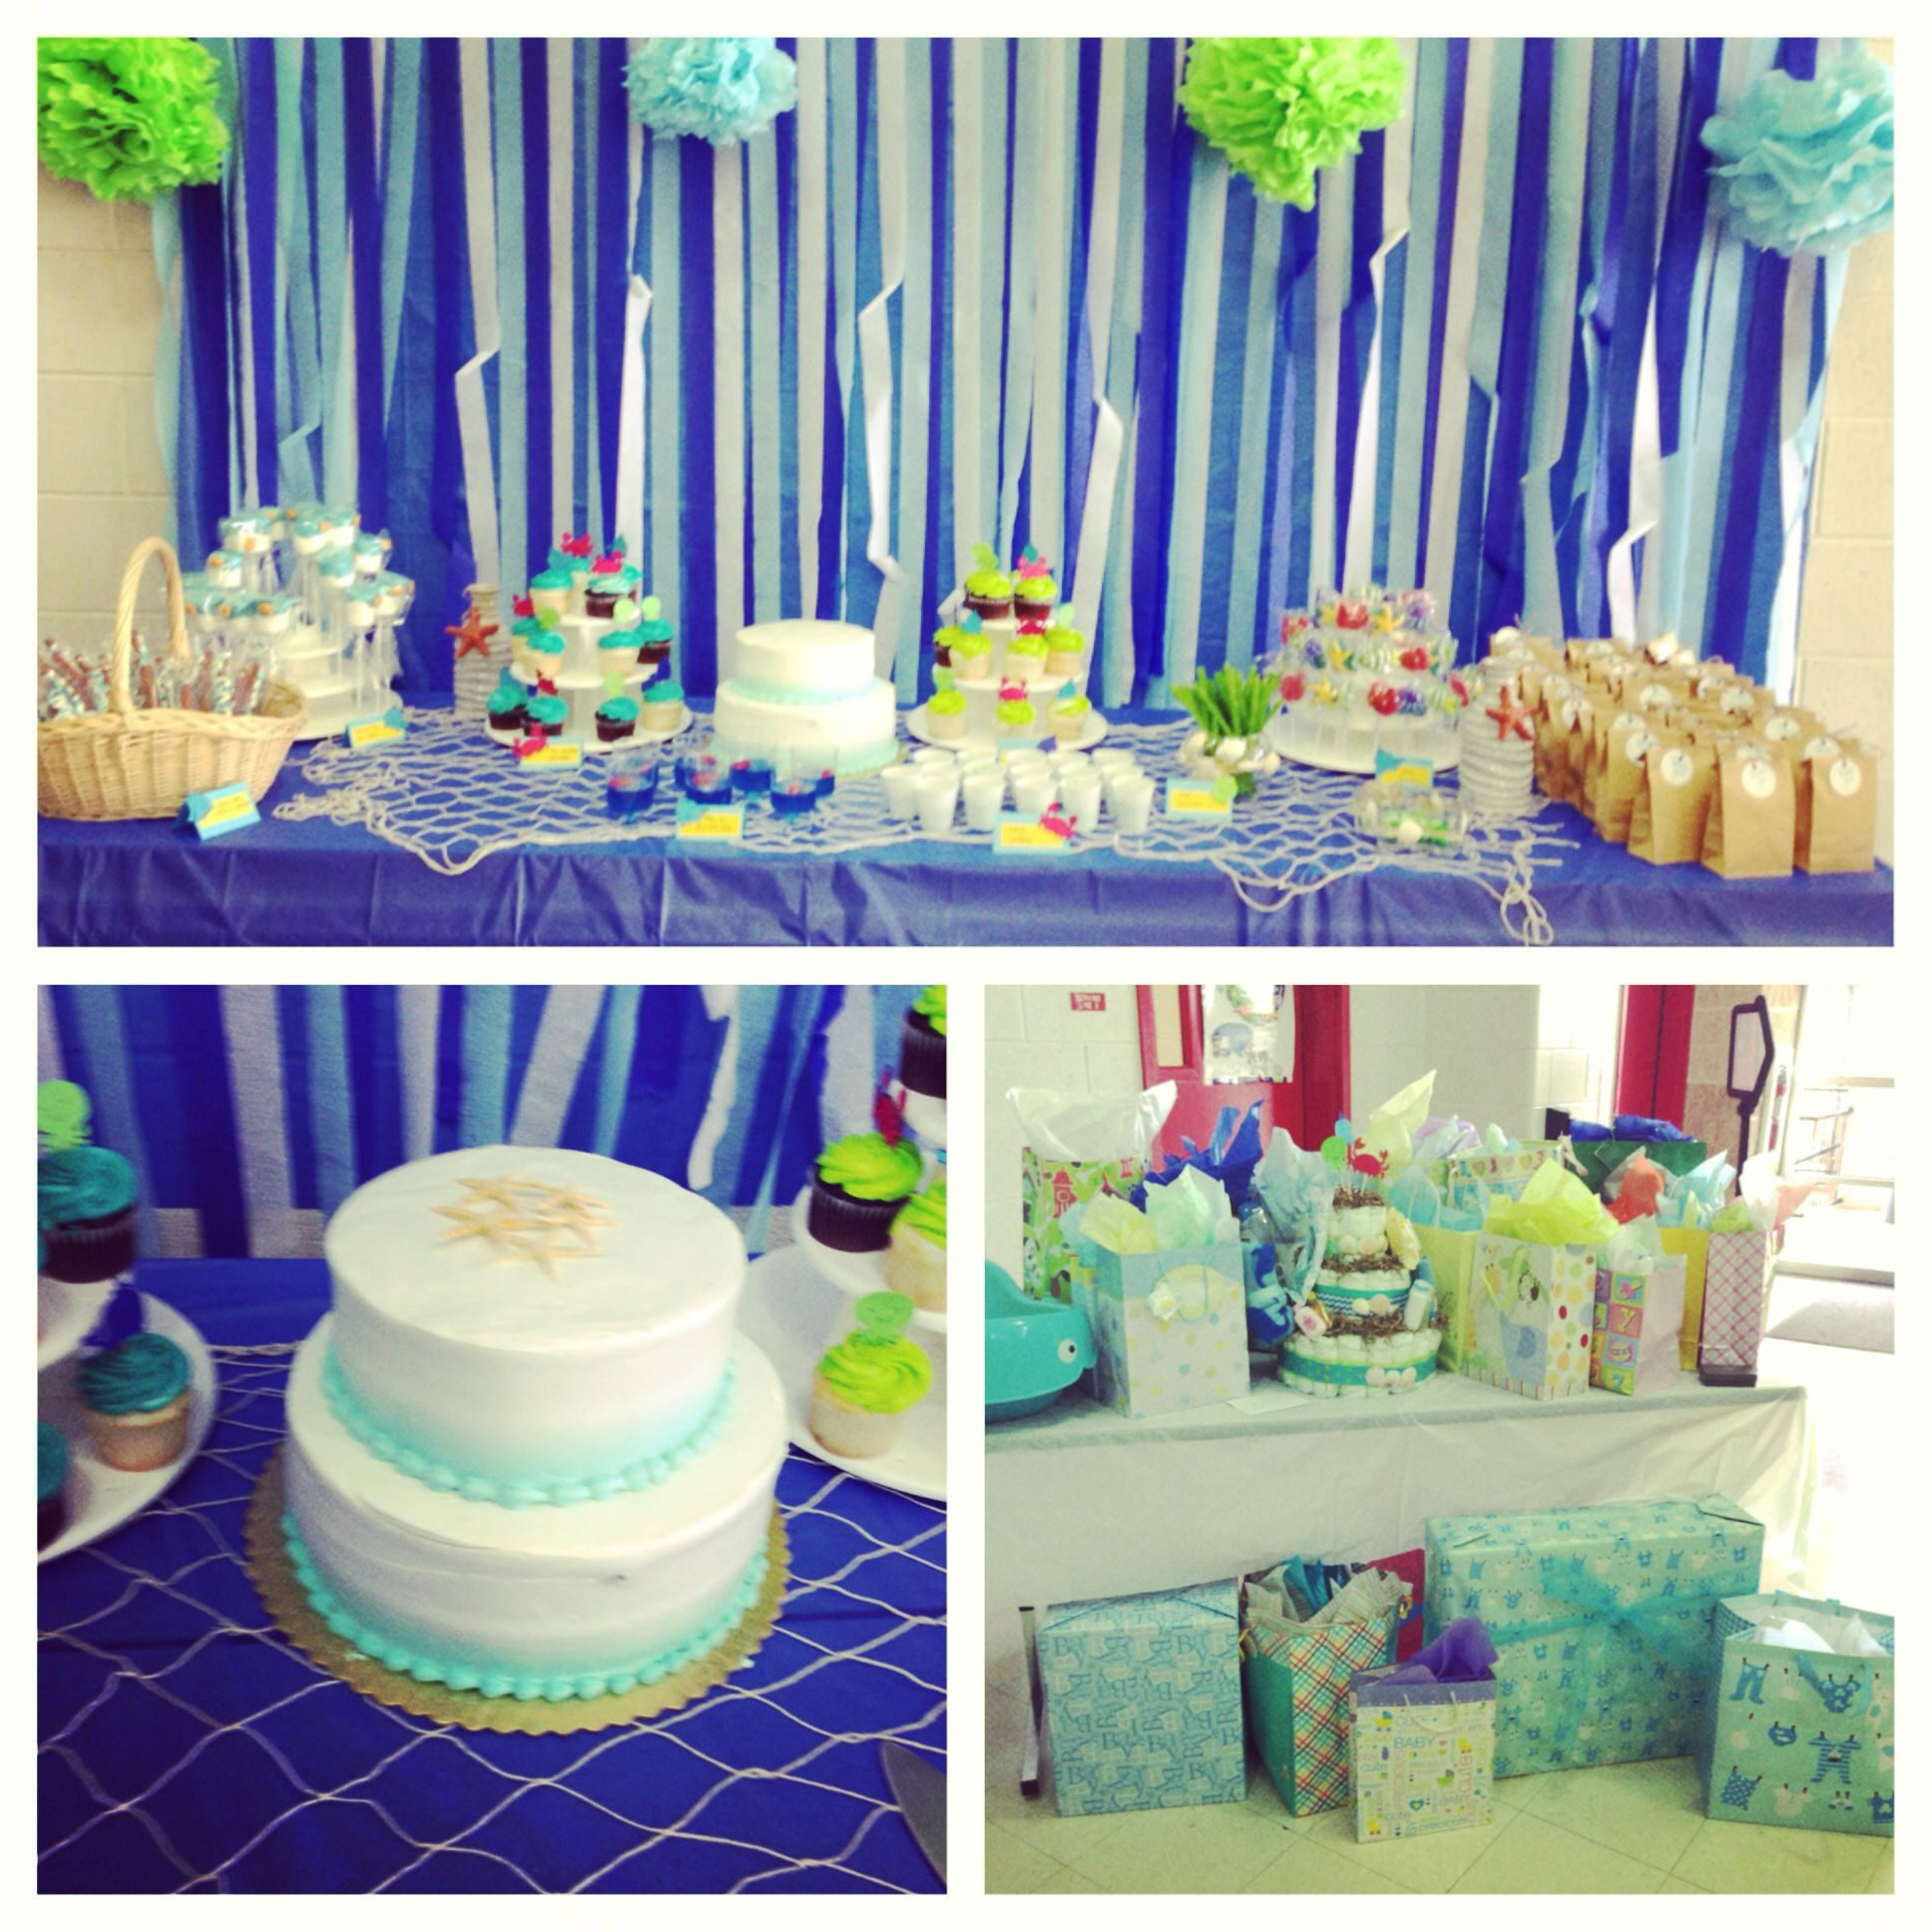 Baby Shower Decorations Table Settings: Sweet Treat Table Decoration Ideas For Under The Sea Baby